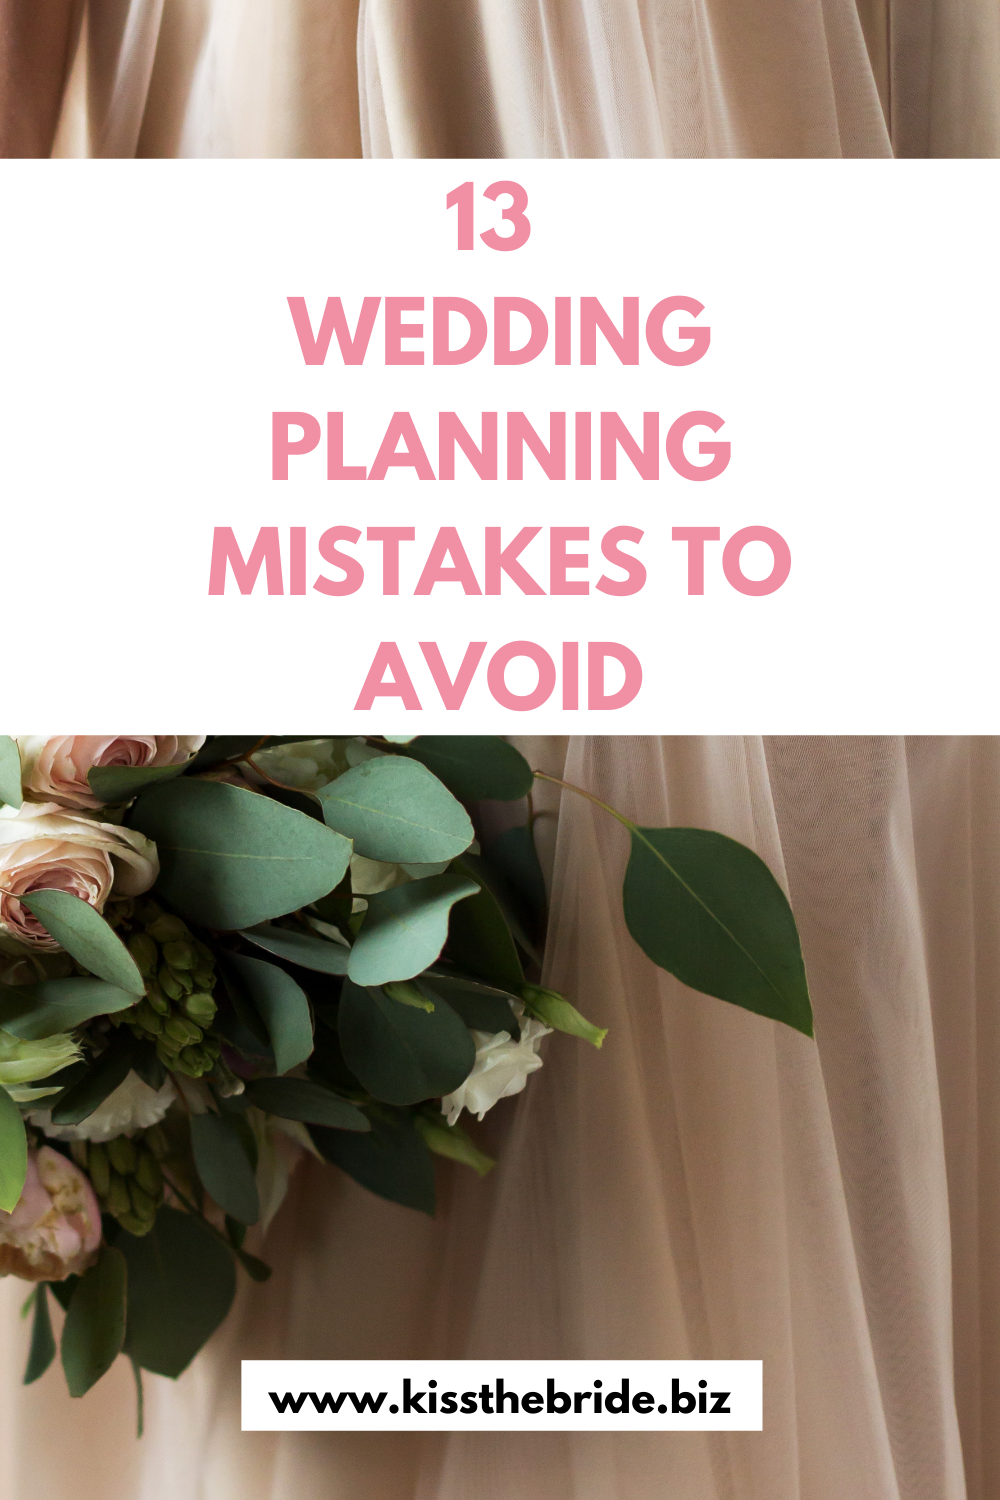 13 Wedding planning g mistakes